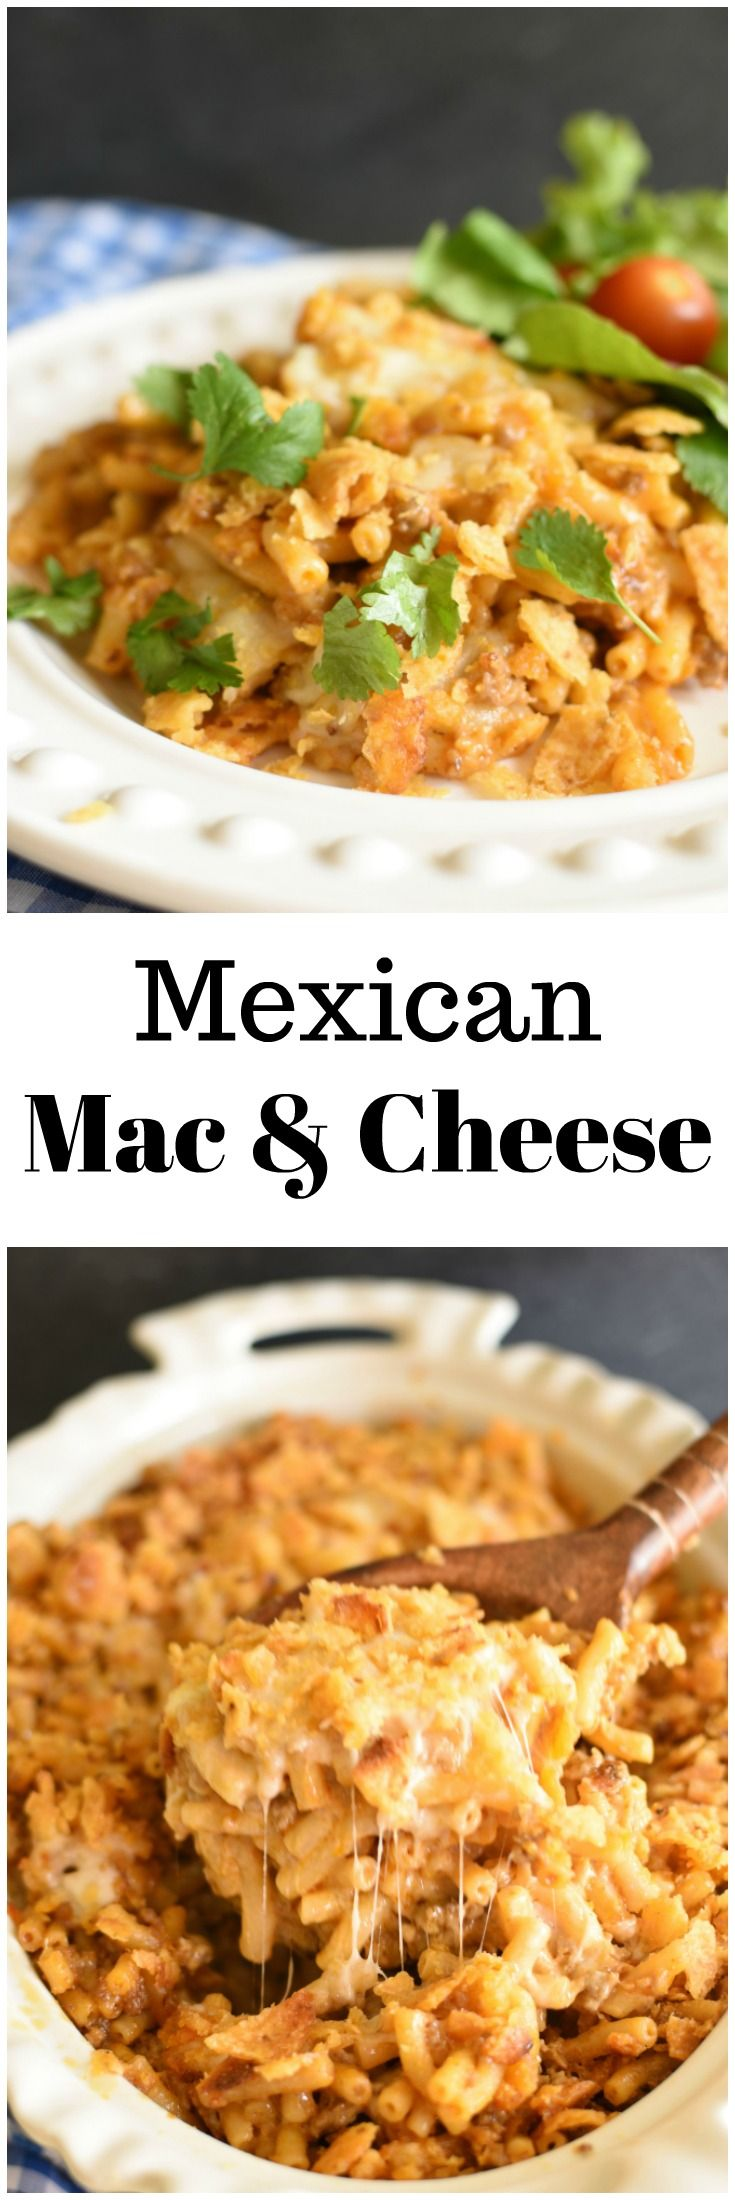 Mexican Mac and Cheese is one of those meals you can make with ingredients straight from the pantry! Plus check out my hacks on how to stock your pantry! AD